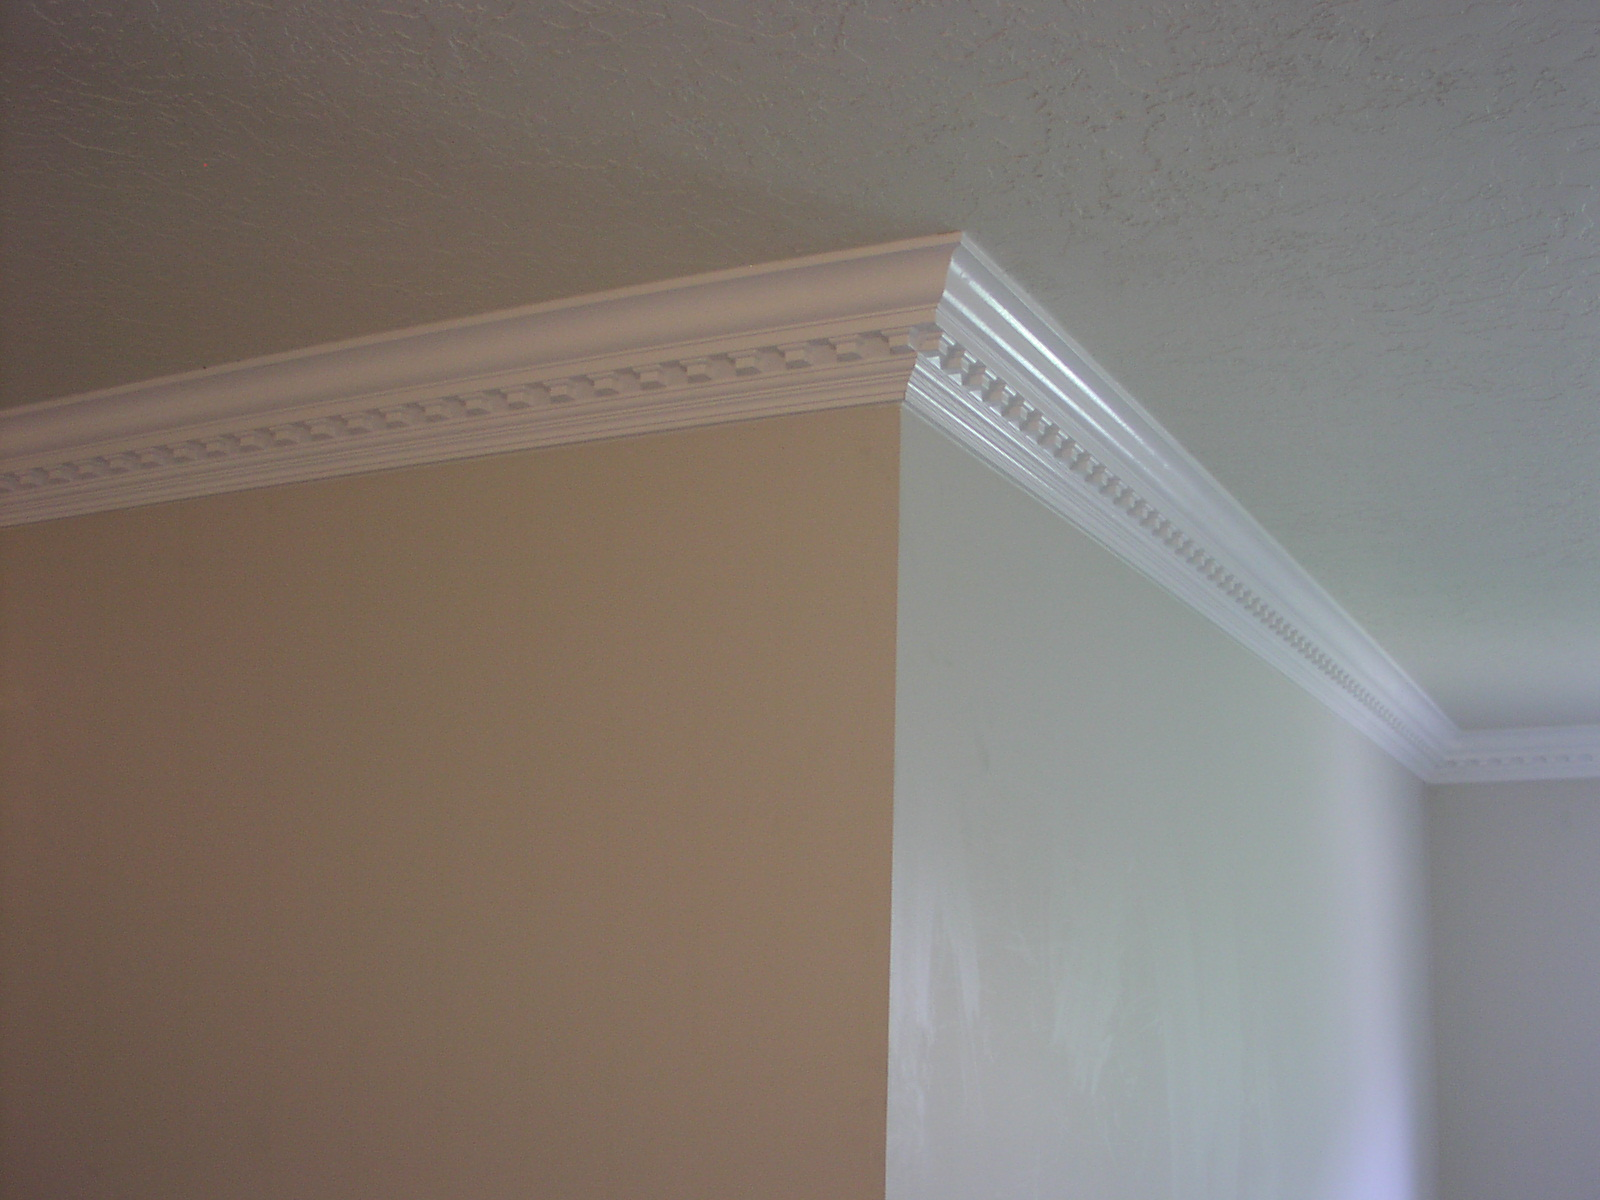 crown molding ideas for low ceilings - Trim carpentry